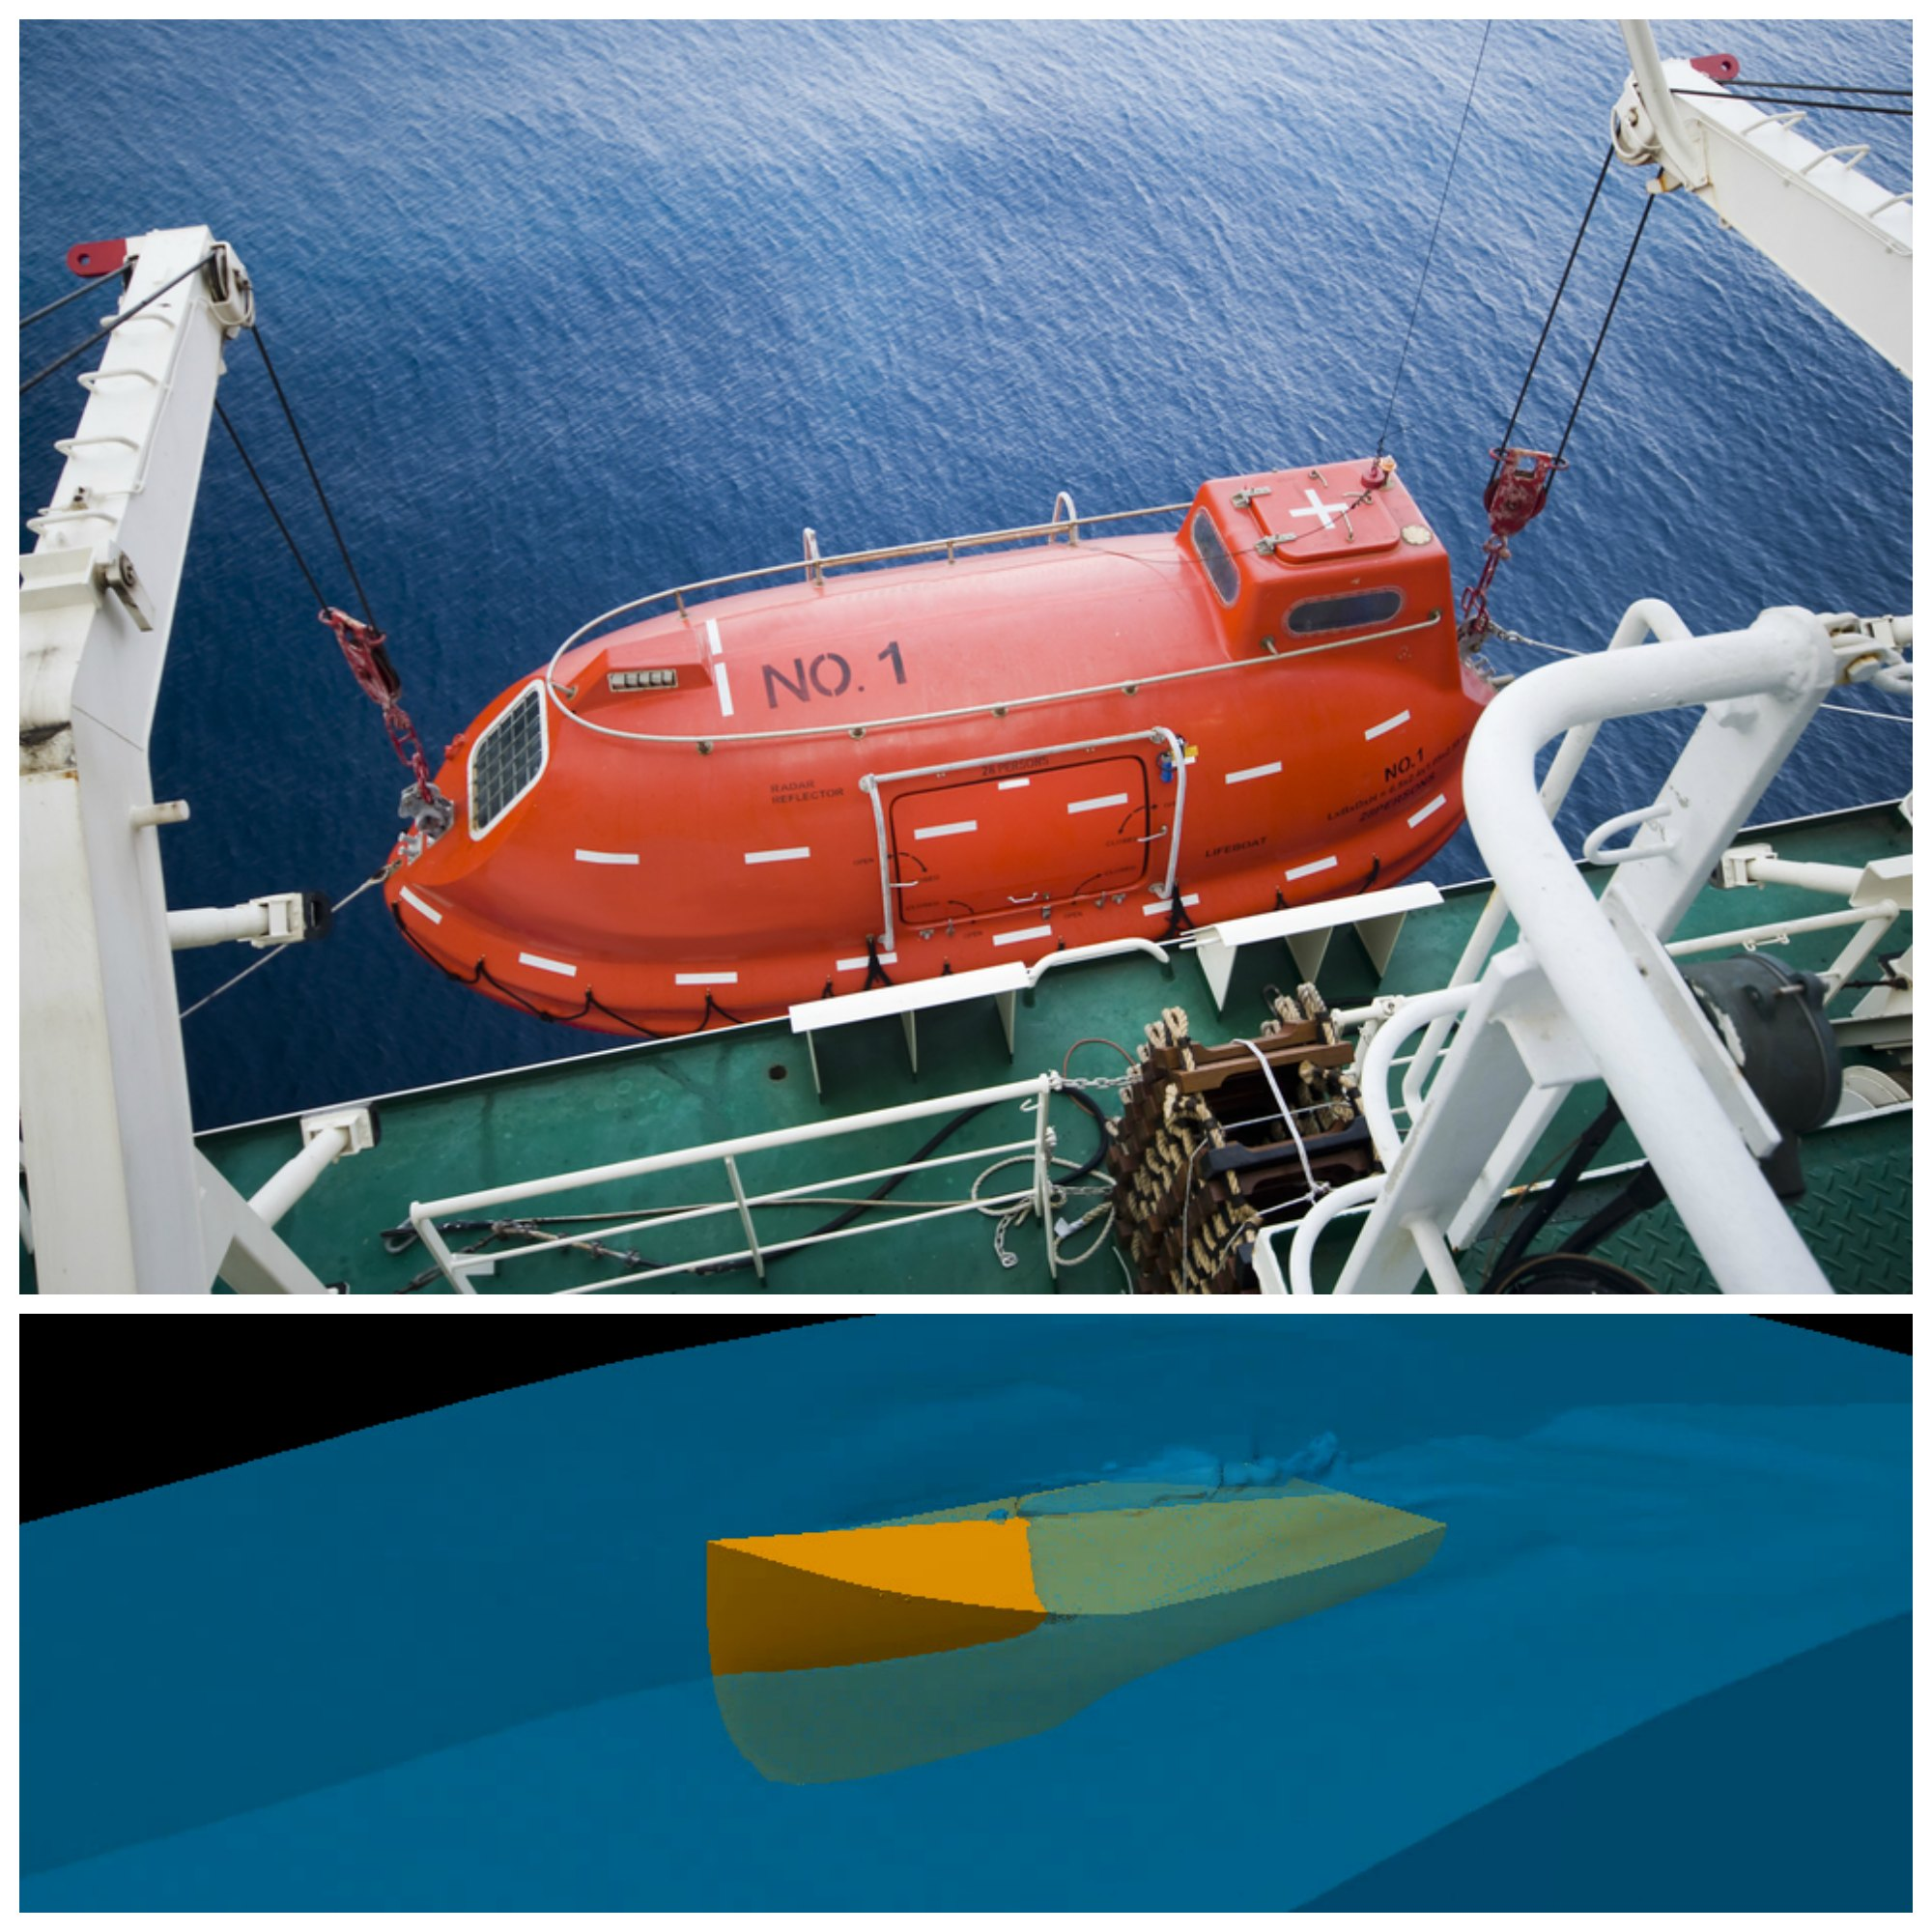 Computer models help safely launch lifeboats in rough seas